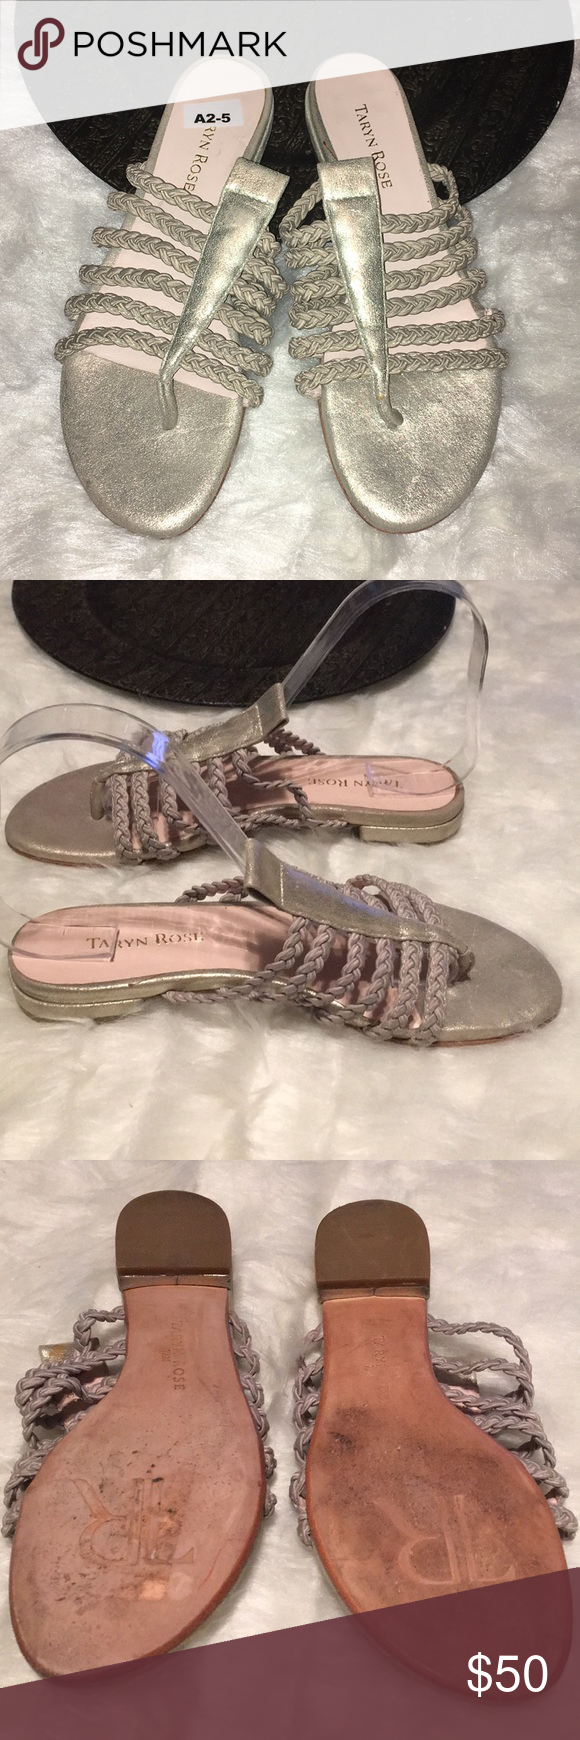 7506e2f4aa3 Taryn rose metallic gold thong sandals 7.5 Braided thong gold slip on Size  7.5 m Minor